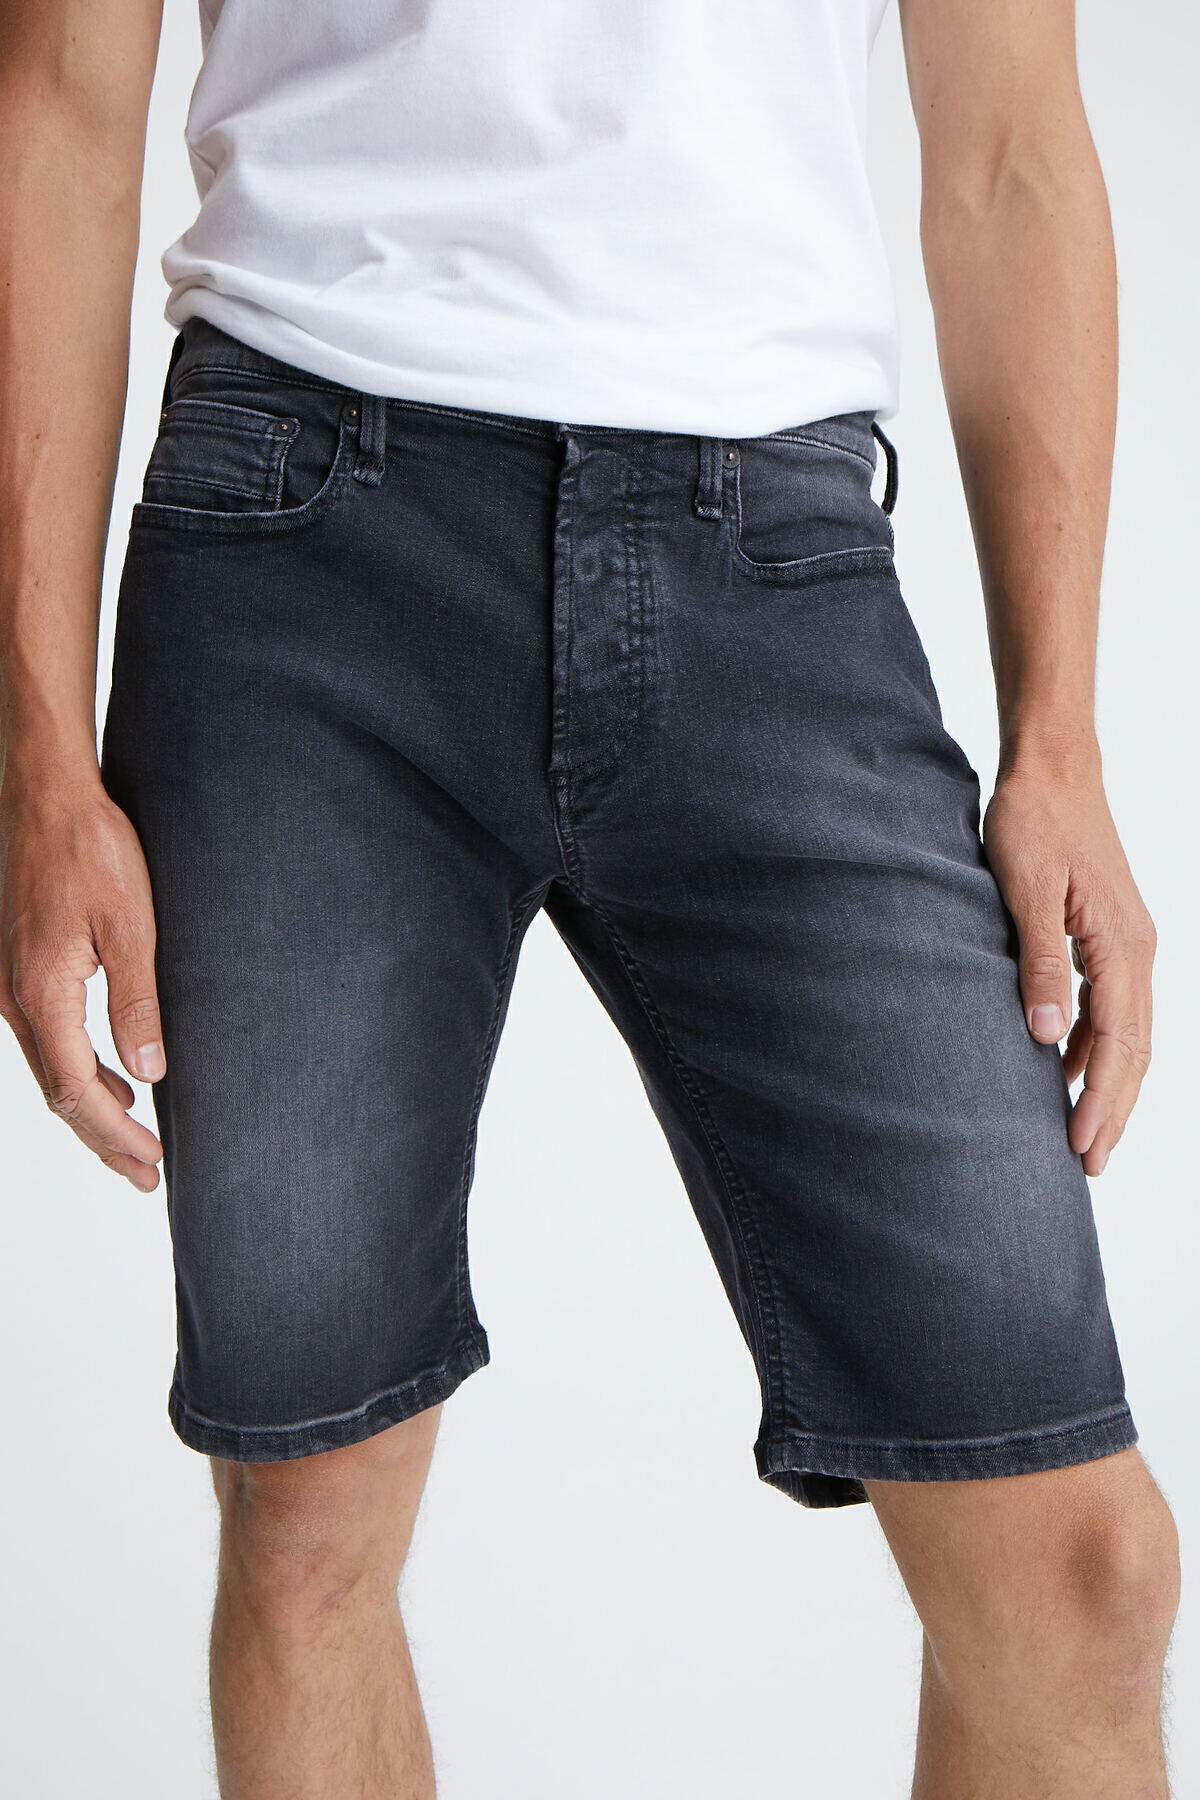 RAZOR SHORT Black Cast Denim - Slim Fit